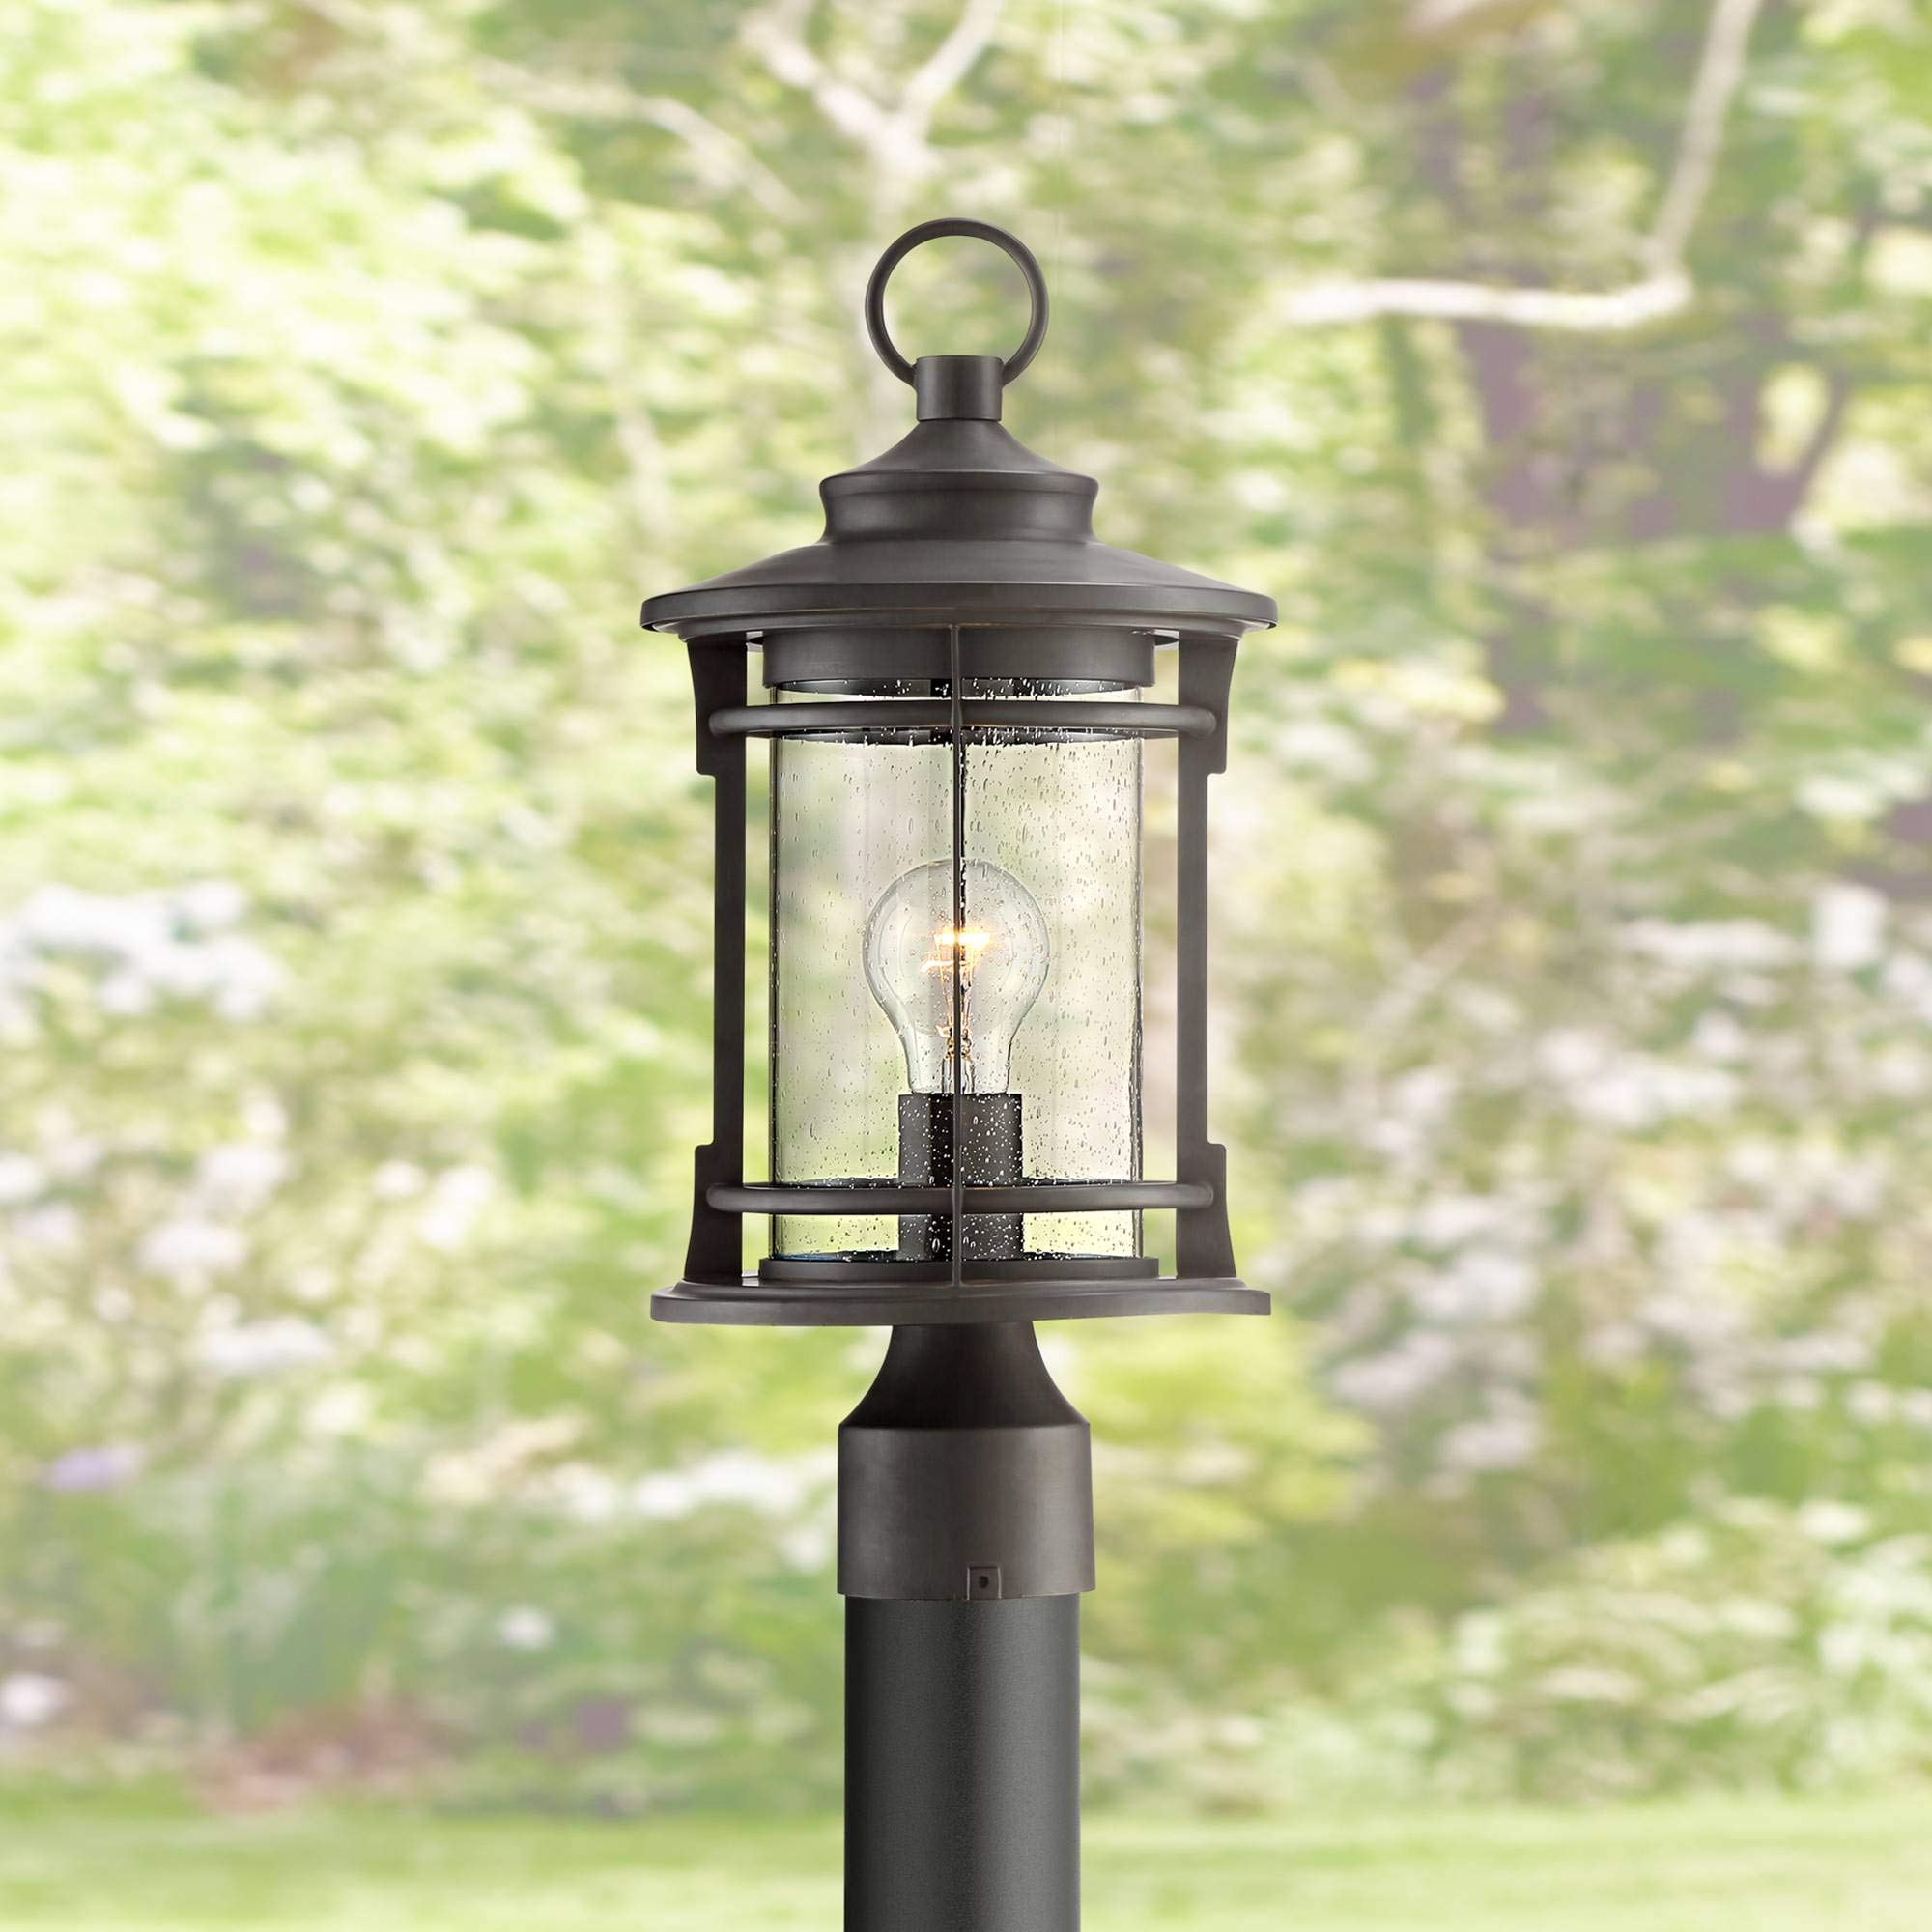 Grenville Outdoor Post Light Fixture Bronze Lantern 17 1/2'' Clear Seedy Glass for Exterior Garden Yard Patio Driveway - Franklin Iron Works